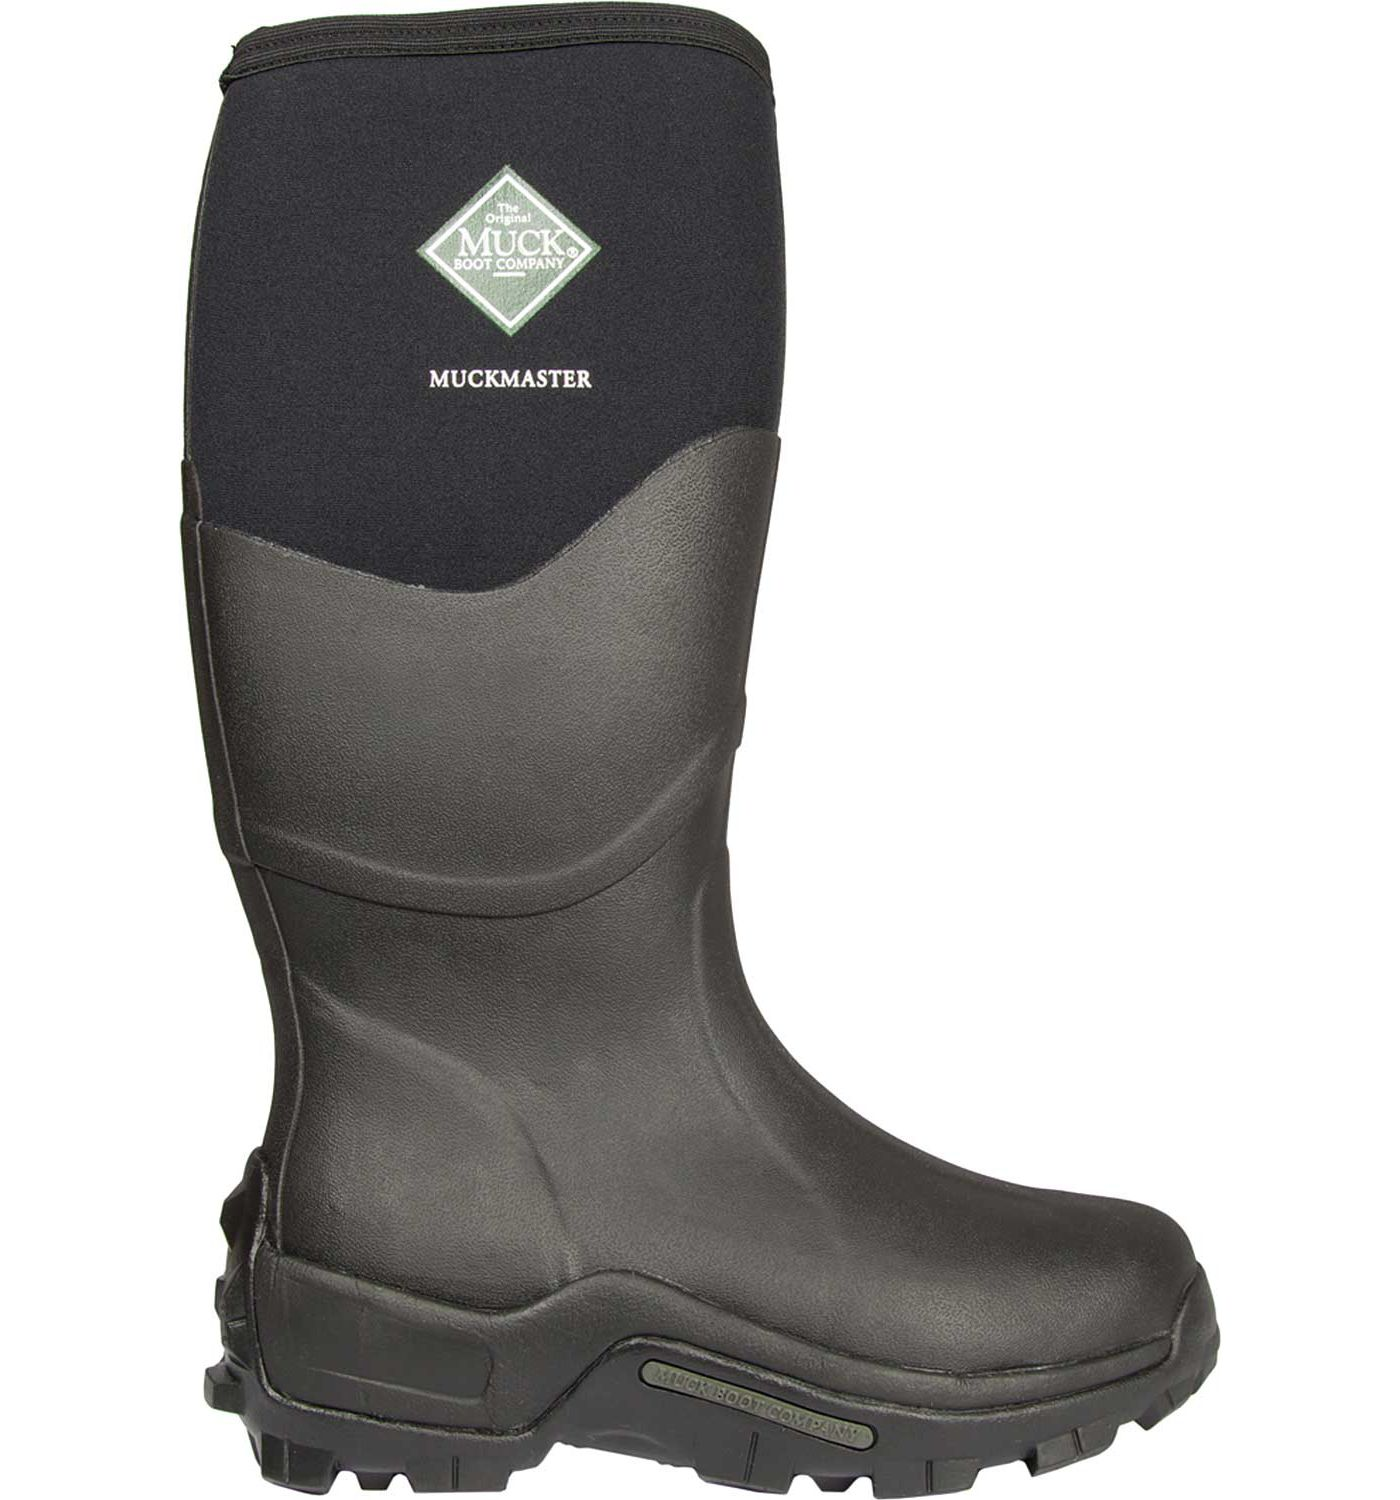 Muck Boot Men's Muckmaster High Waterproof Work Boots